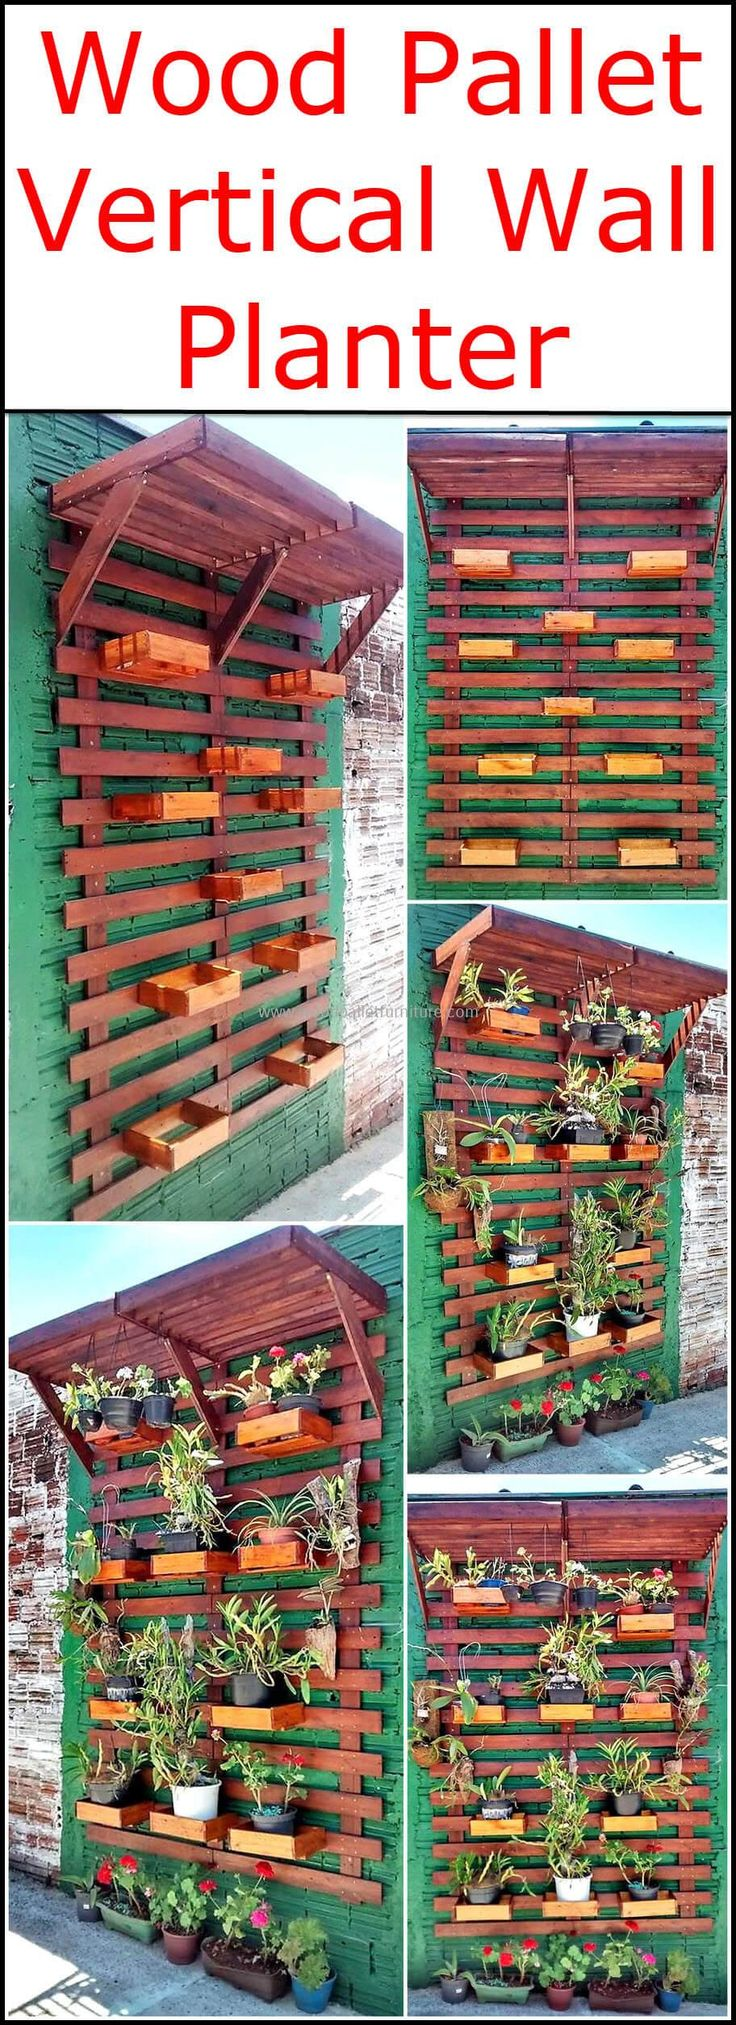 If your desires to grow different plants and flowers at your home, but worried about small planting area then use this wood pallet vertical wall planter art to fulfill your planting needs and to make your outdoor a royal place with its incredible beauty.